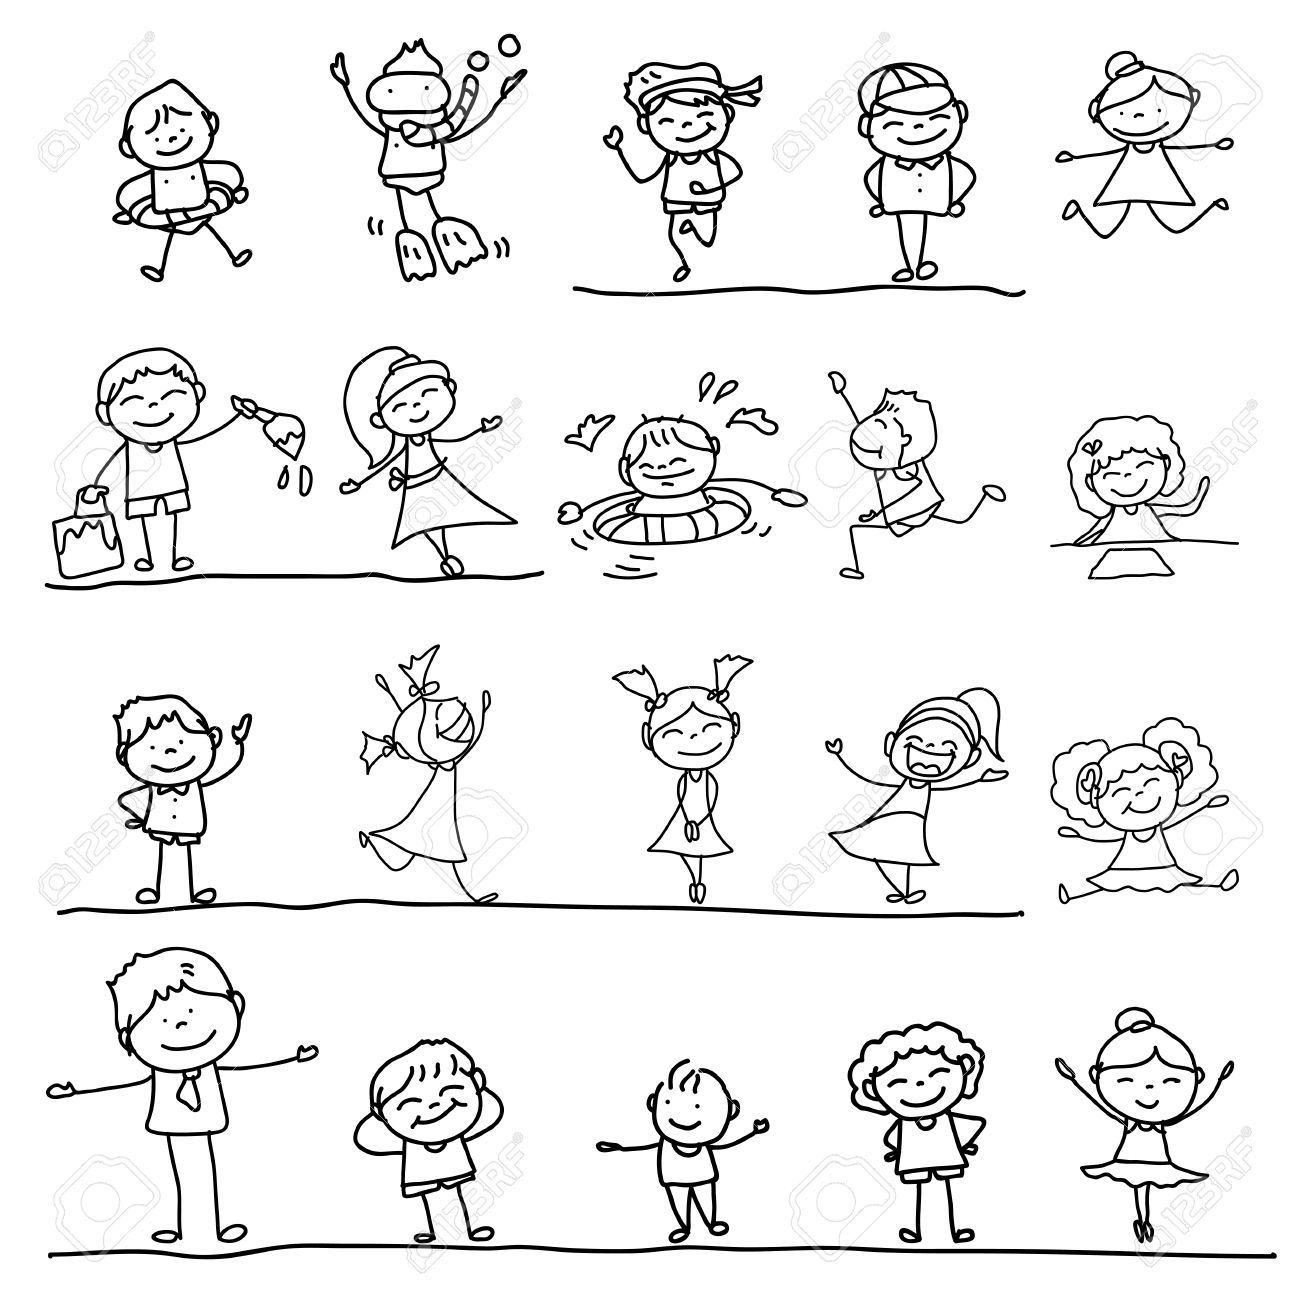 1300x1300 Family Drawing Stock Photos. Royalty Free Business Images